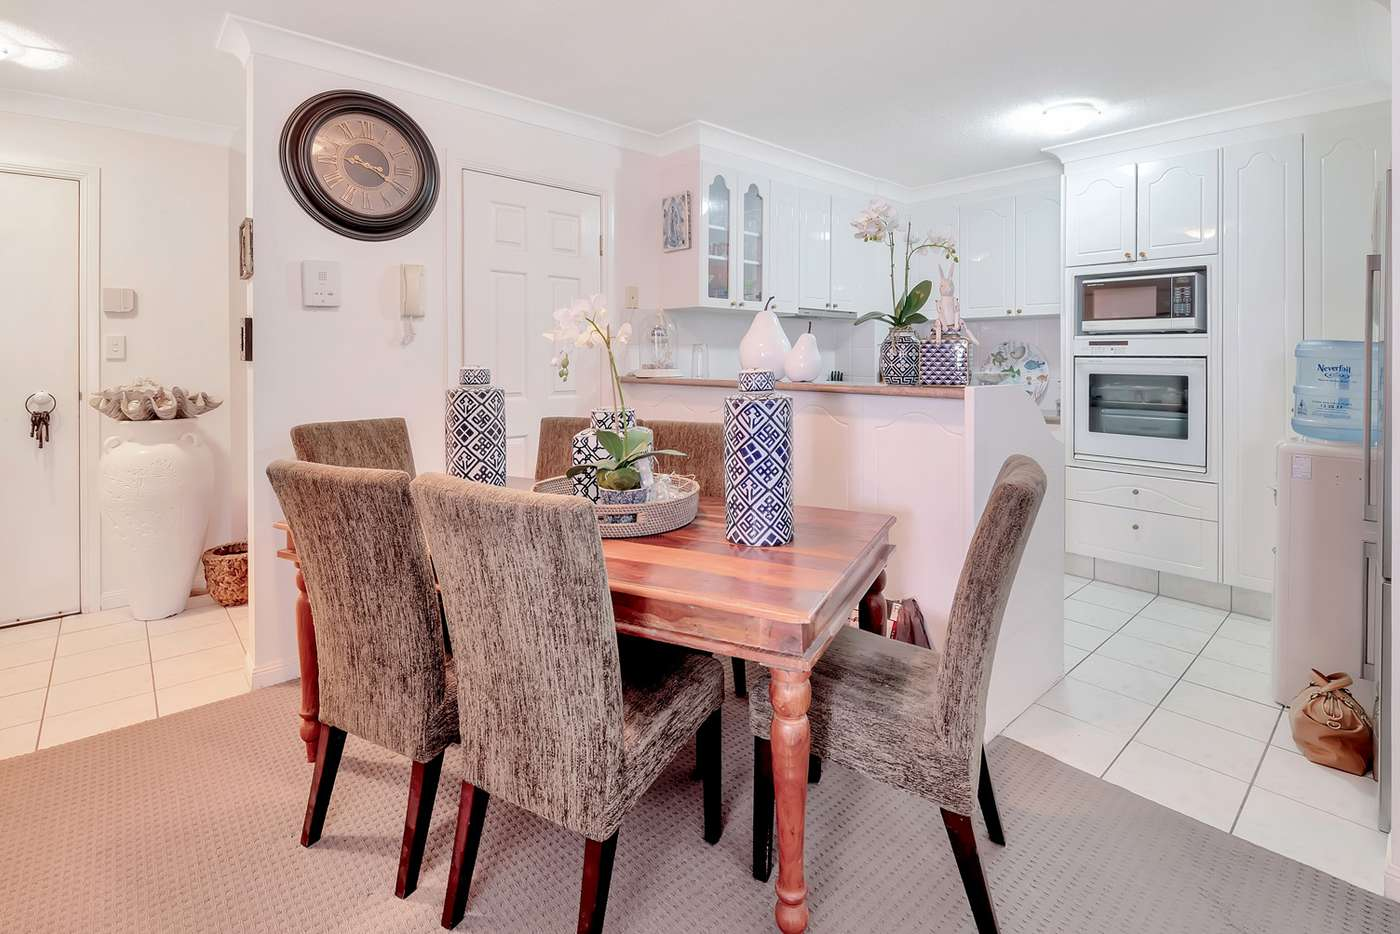 Fifth view of Homely apartment listing, 31/100 Cotlew Street East, Southport QLD 4215